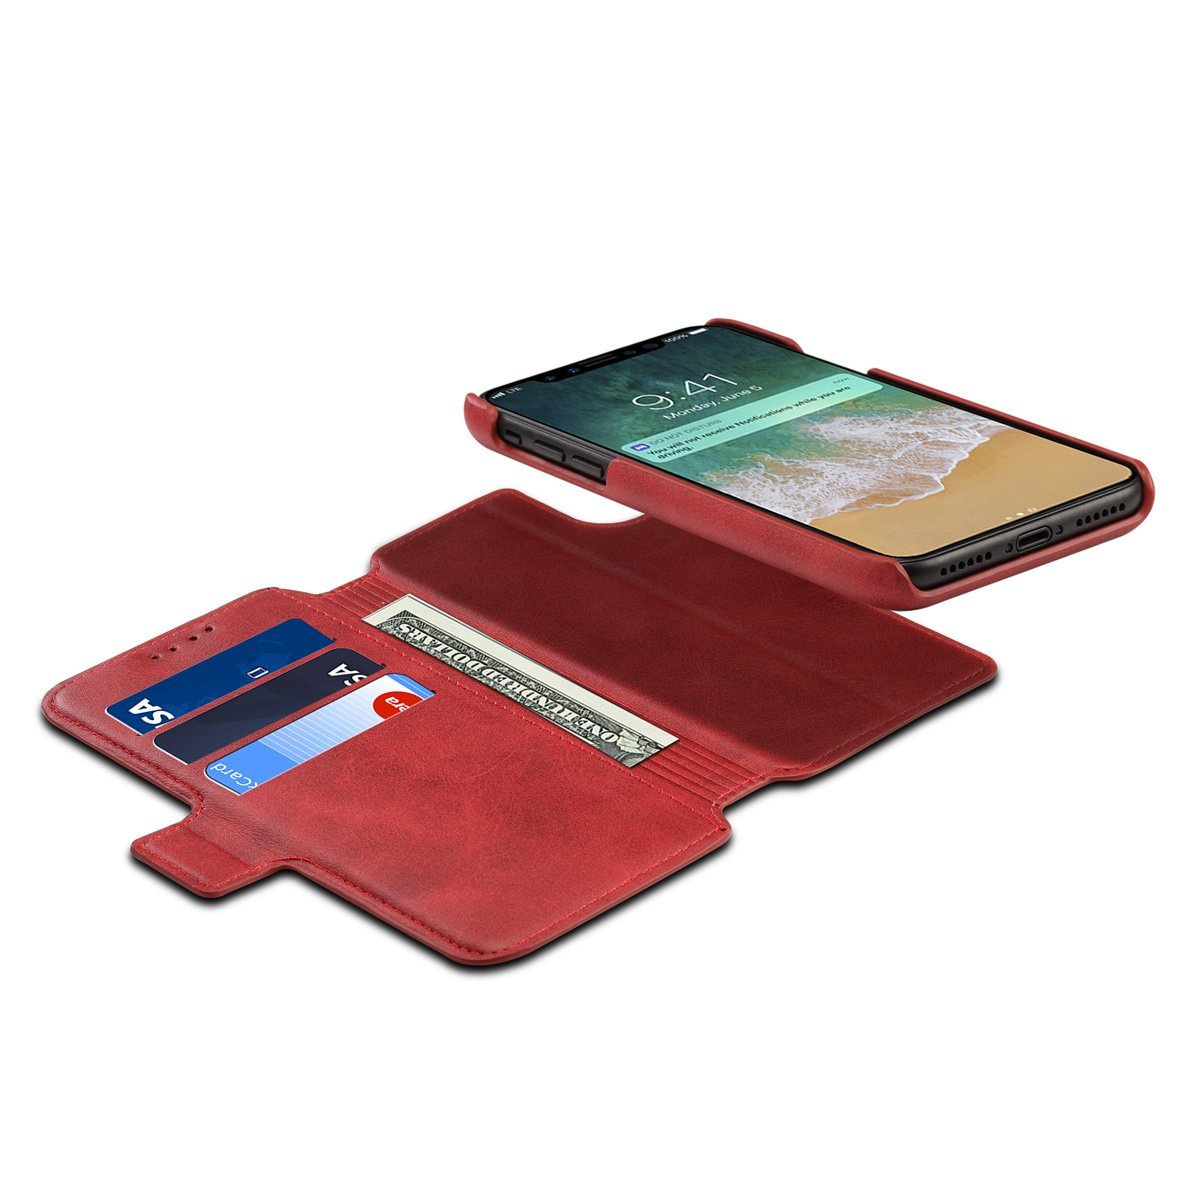 Scheam iPhone X Flip Cover, Case, Skins Card Slot [Stand Feature] Leather Wallet Case Vintage Book Style Magnetic Protective Cover Holder for iPhone X - Red by Scheam (Image #9)